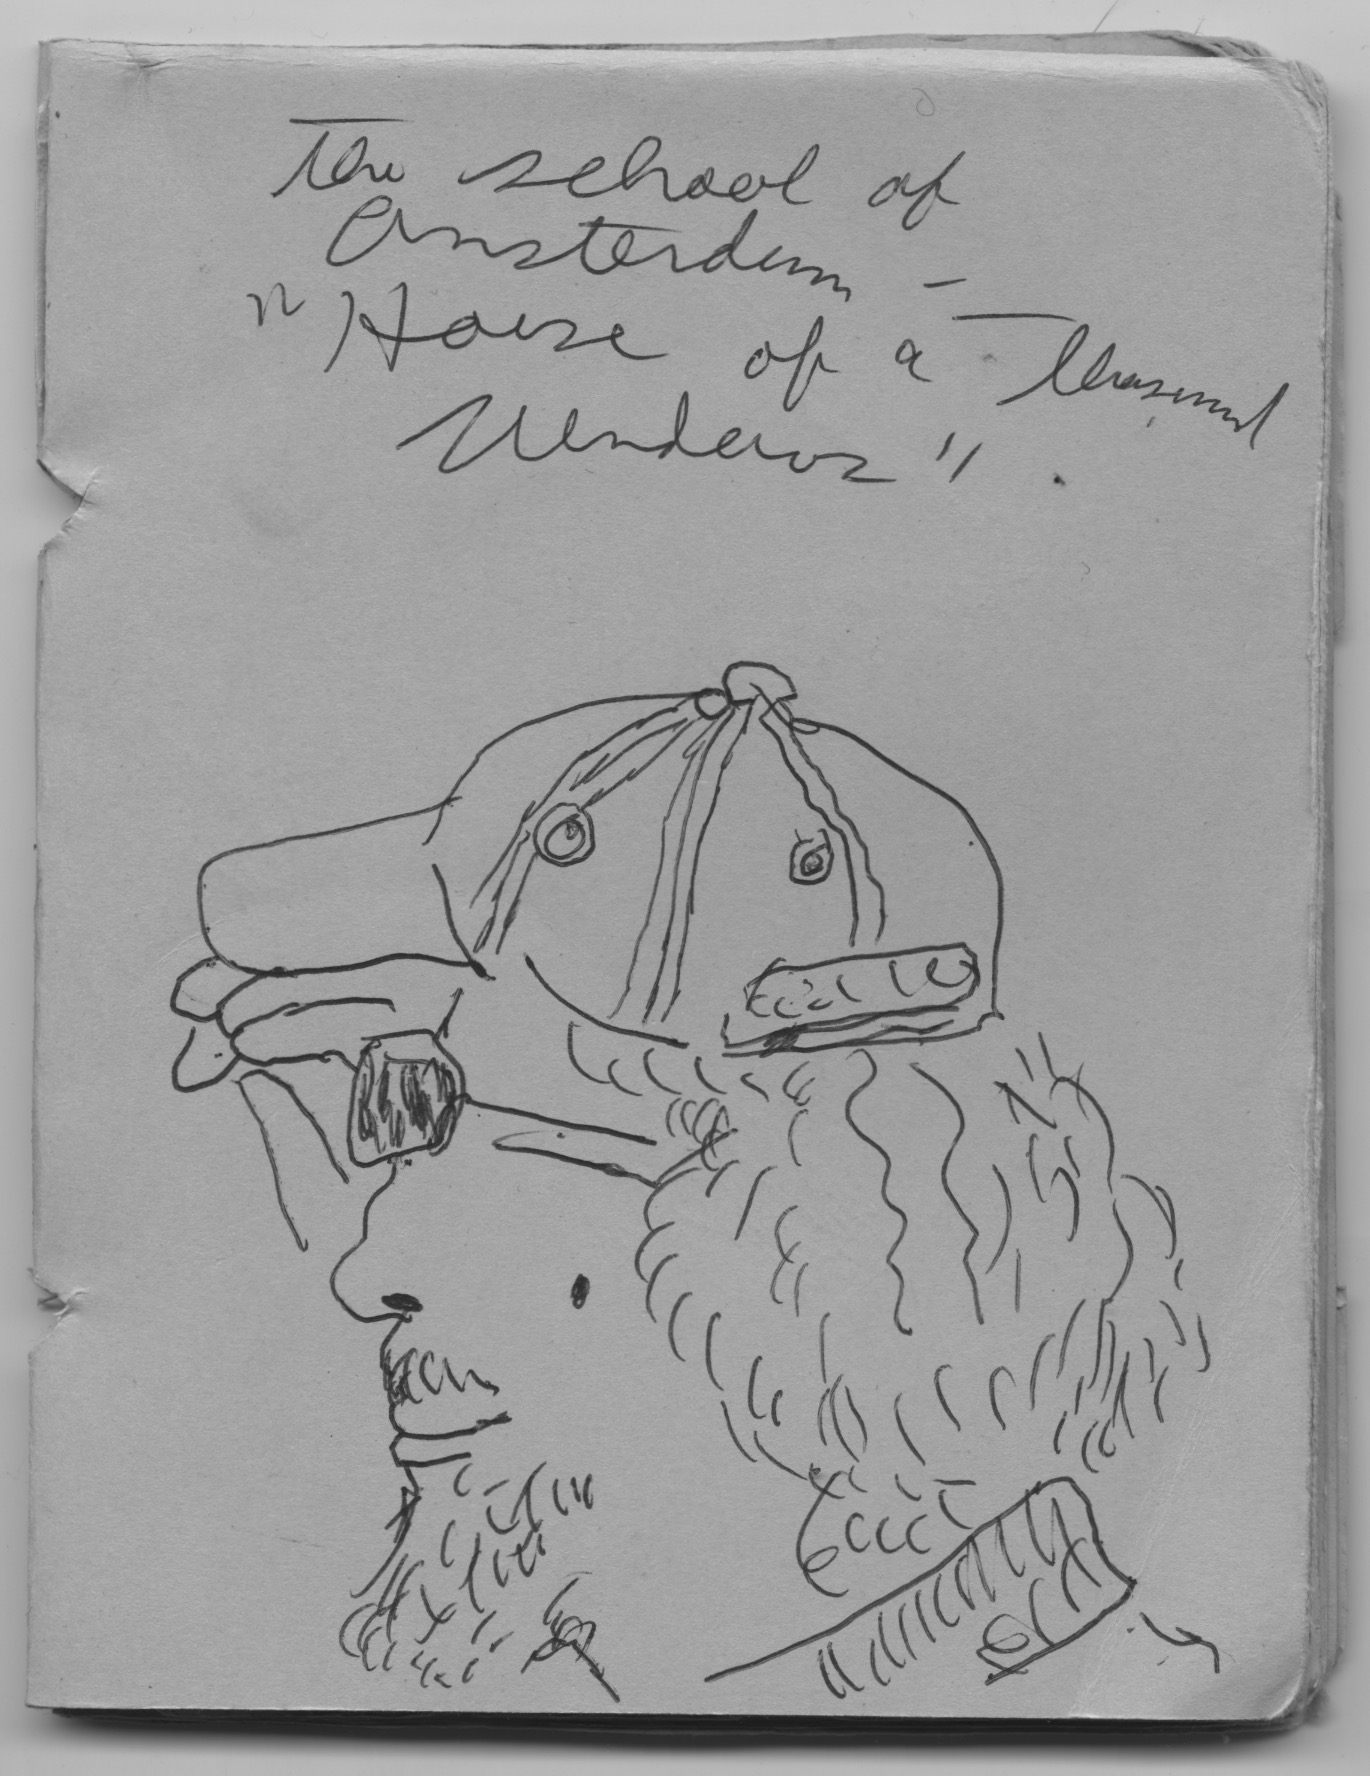 A page from the author's sketchbook, with a ballpoint sketch of her dad, a man with long hair and a beard, wearing a baseball cap.